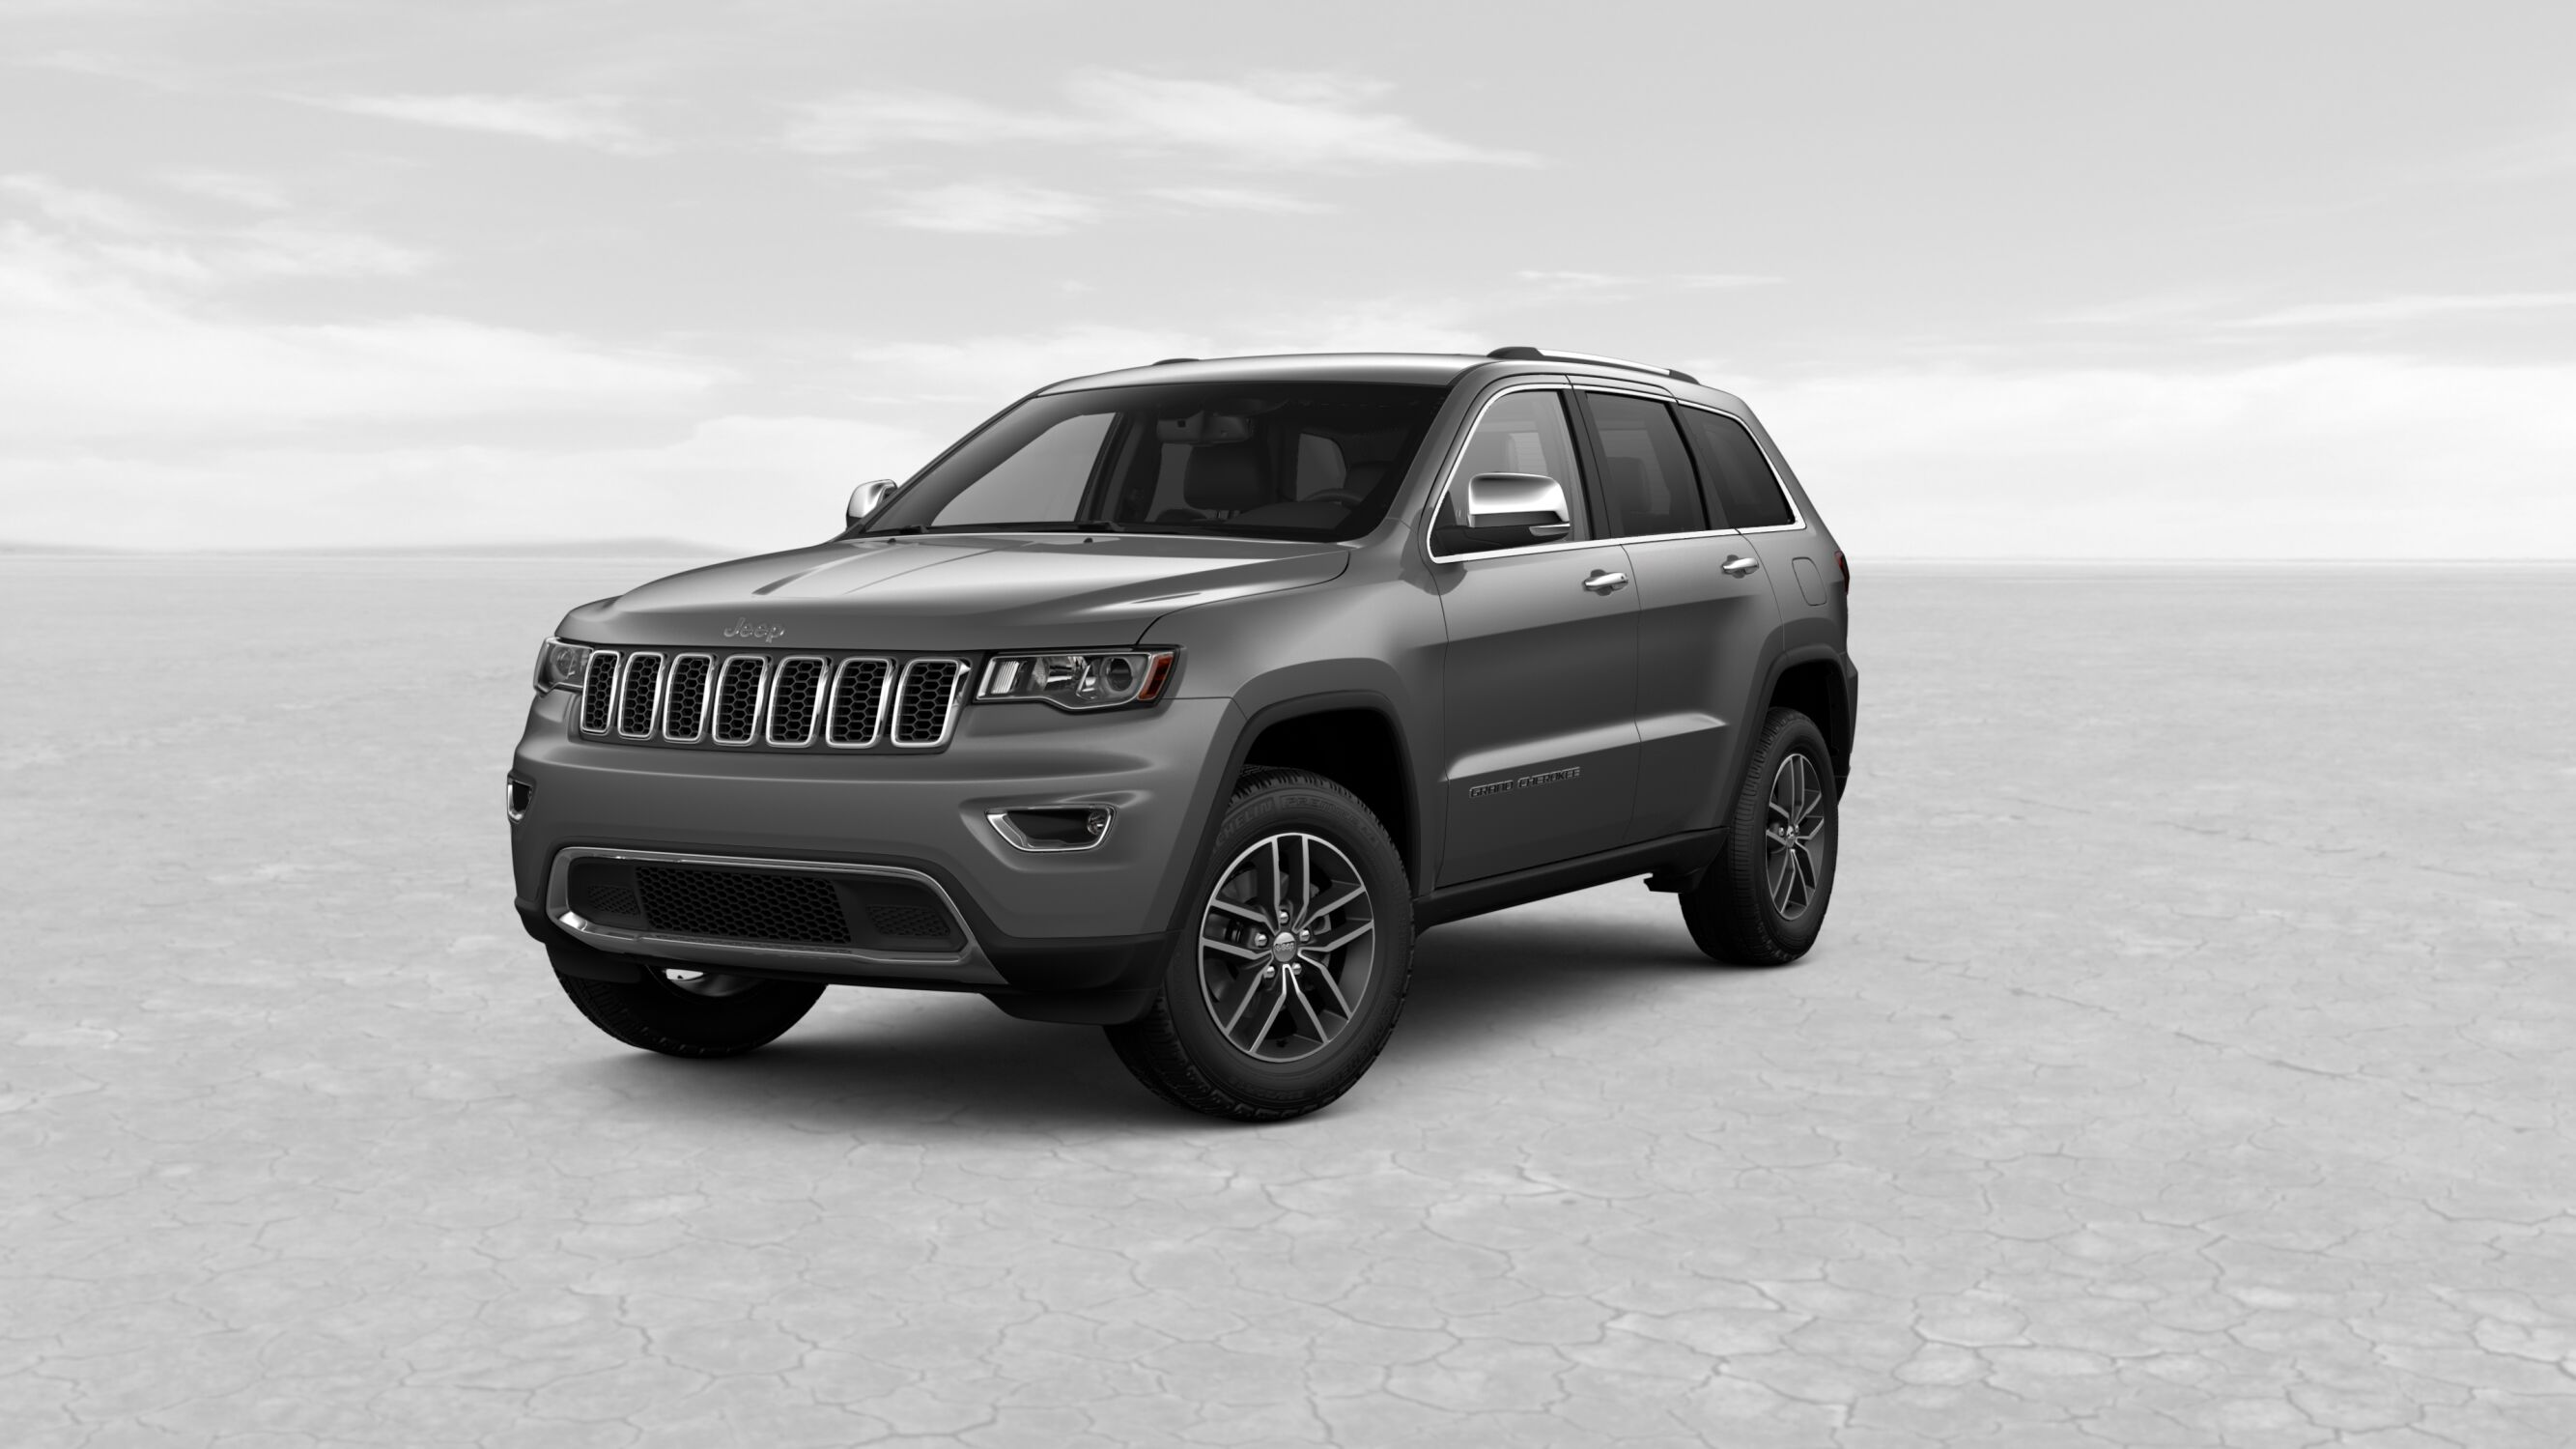 2018 Jeep Grand Chreokee Limited Granite Crystal Metallic Exterior Front View